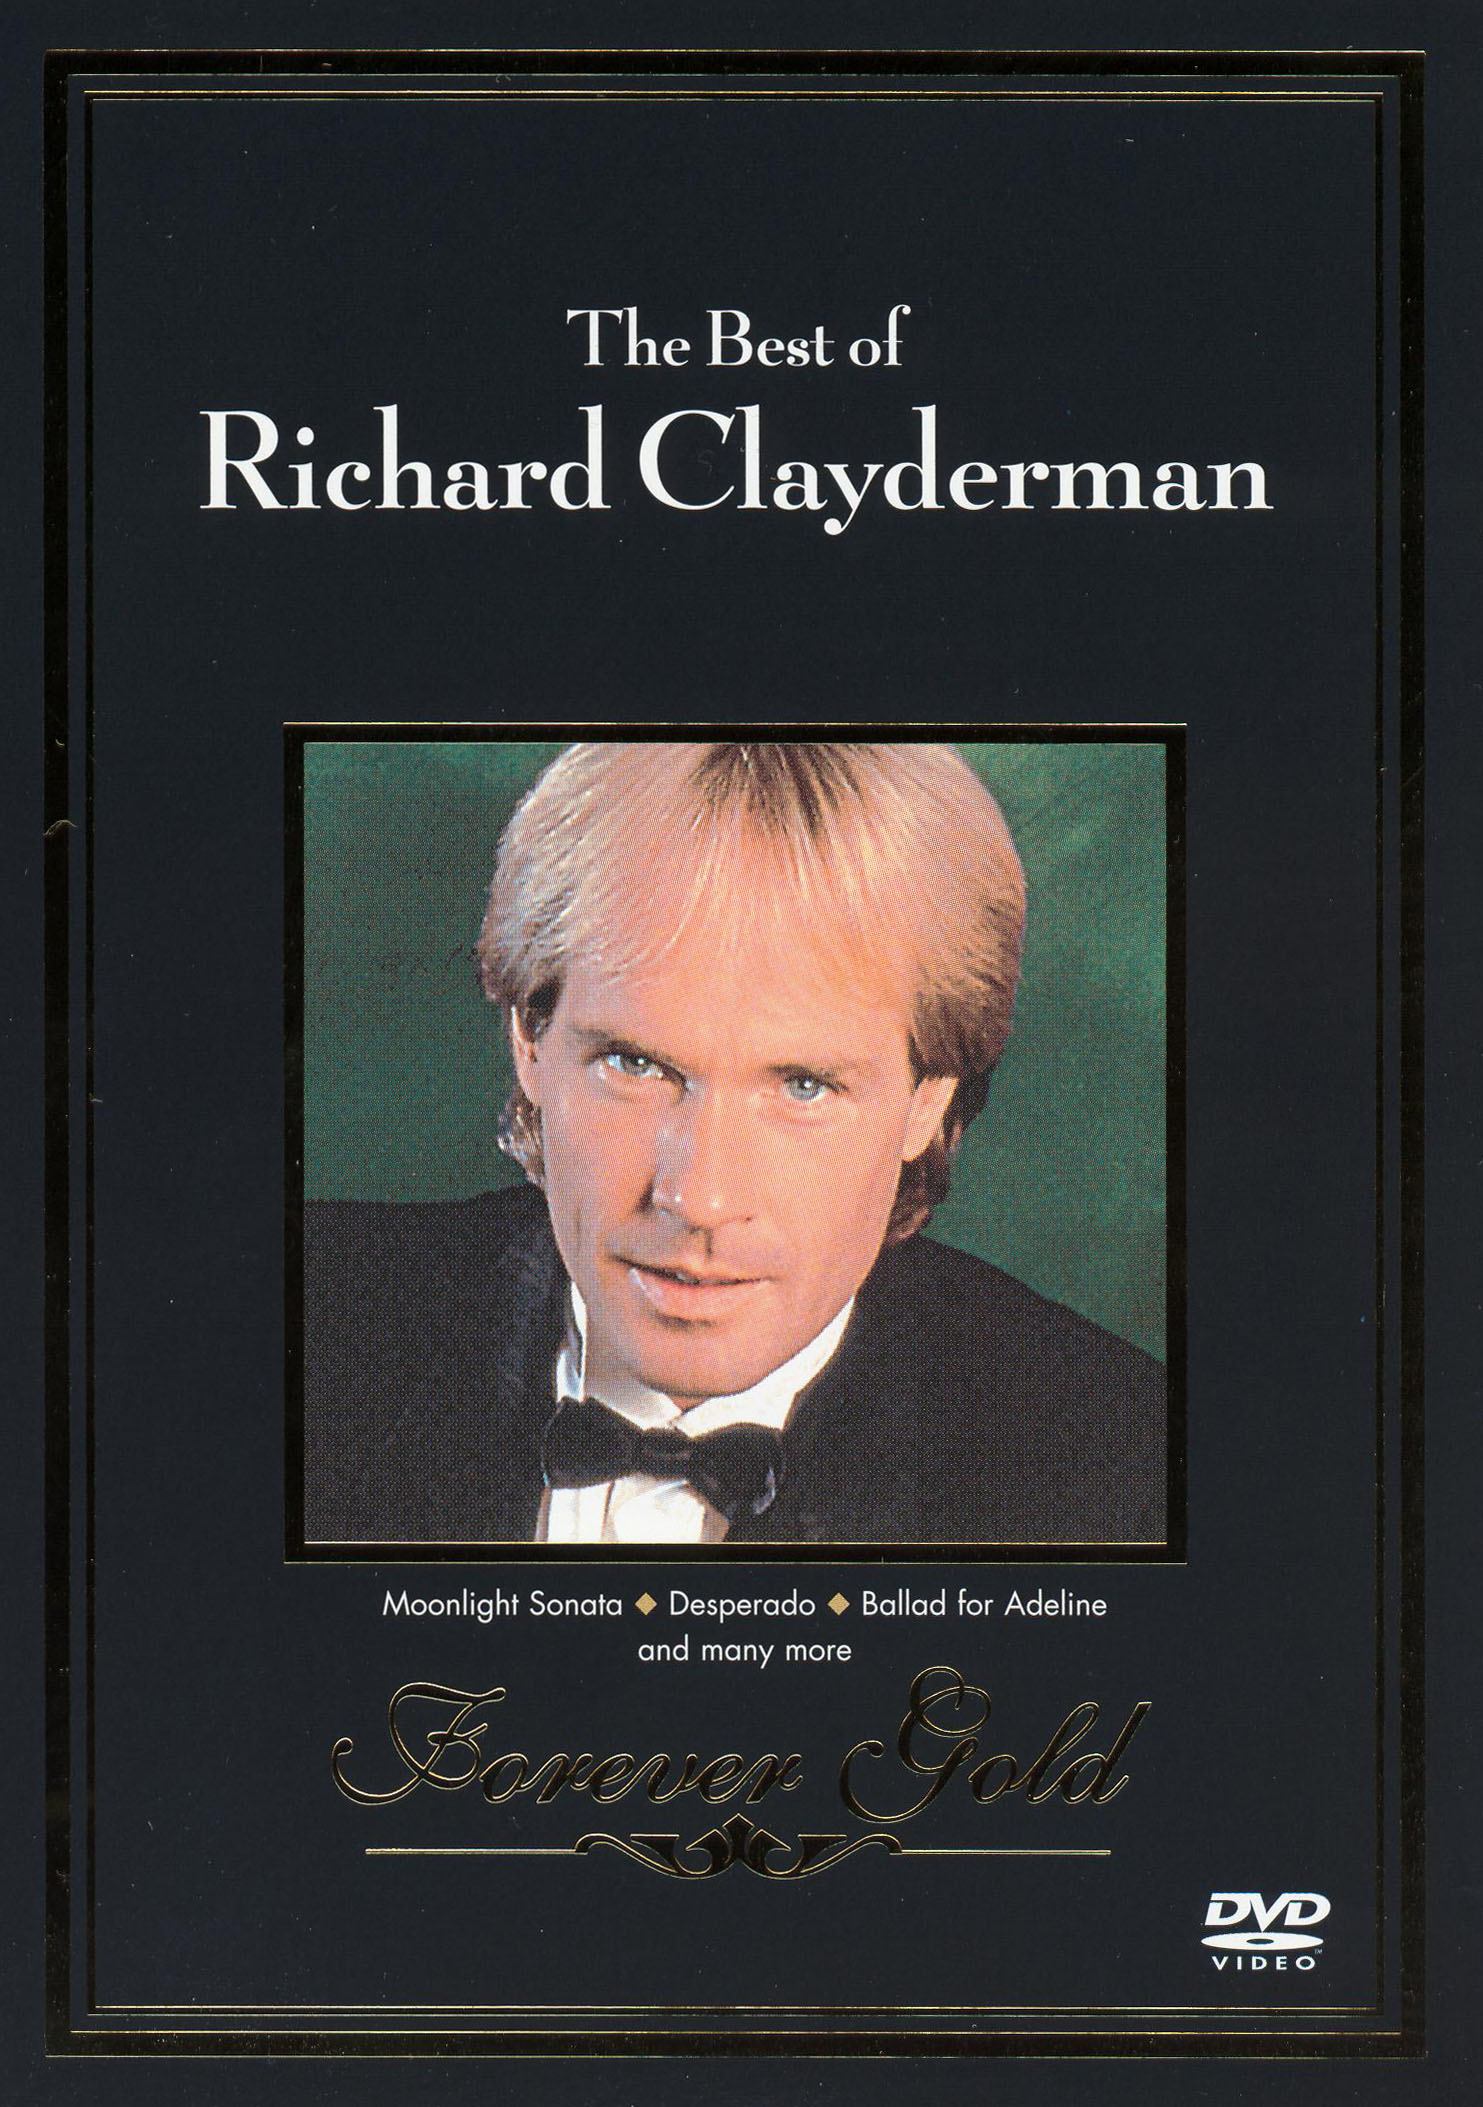 Richard Clayderman: The Best of Richard Clayderman - Forever Gold